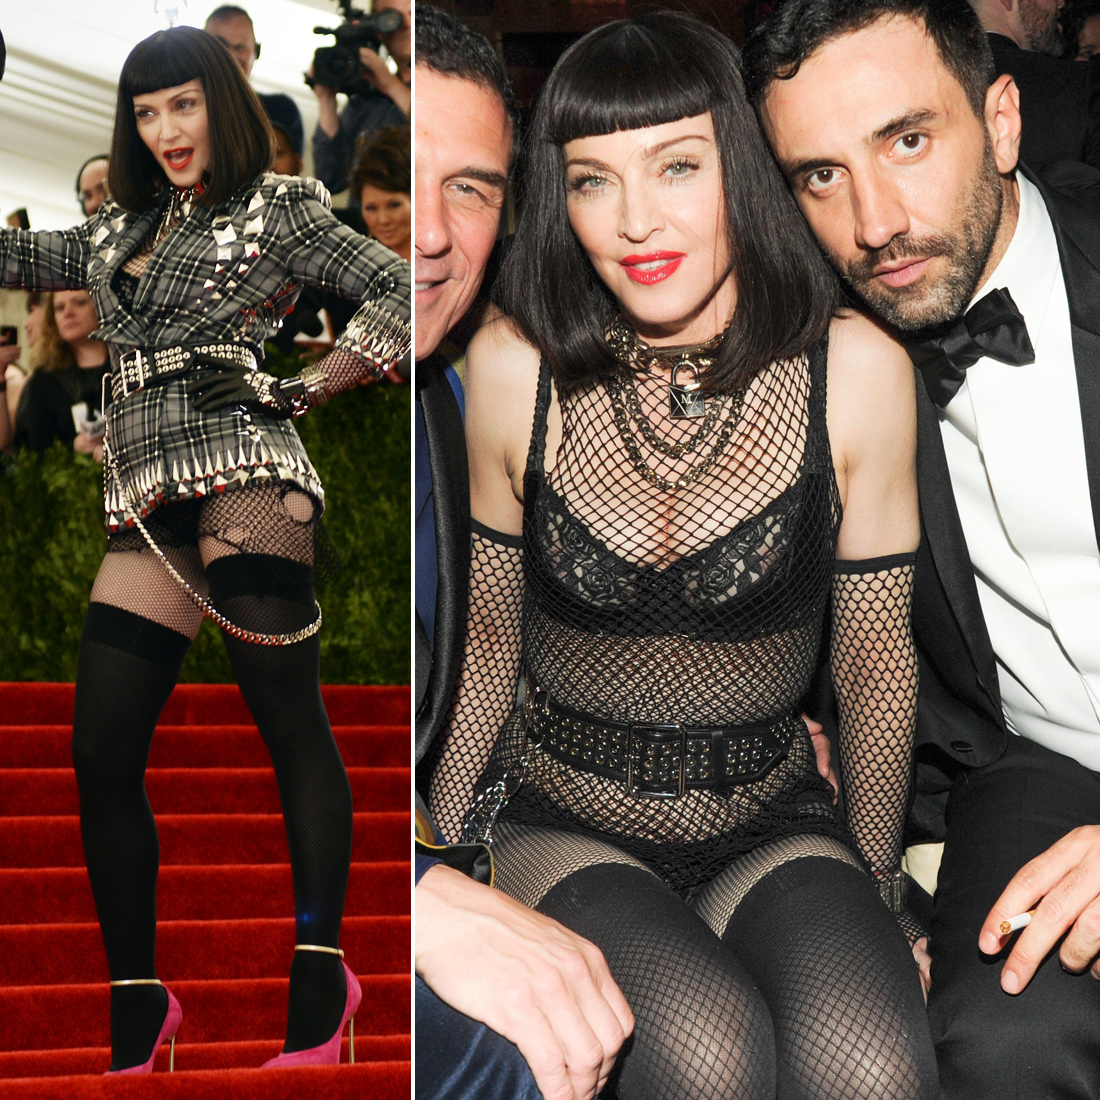 Madonna picked a Givenchy Haute Couture by Riccardo Tisci look that combined tartan, shredded fishnets, black leather, chains, and plenty of studs. As for the afterparty? She skipped the tartan topper and kept it very revealing.